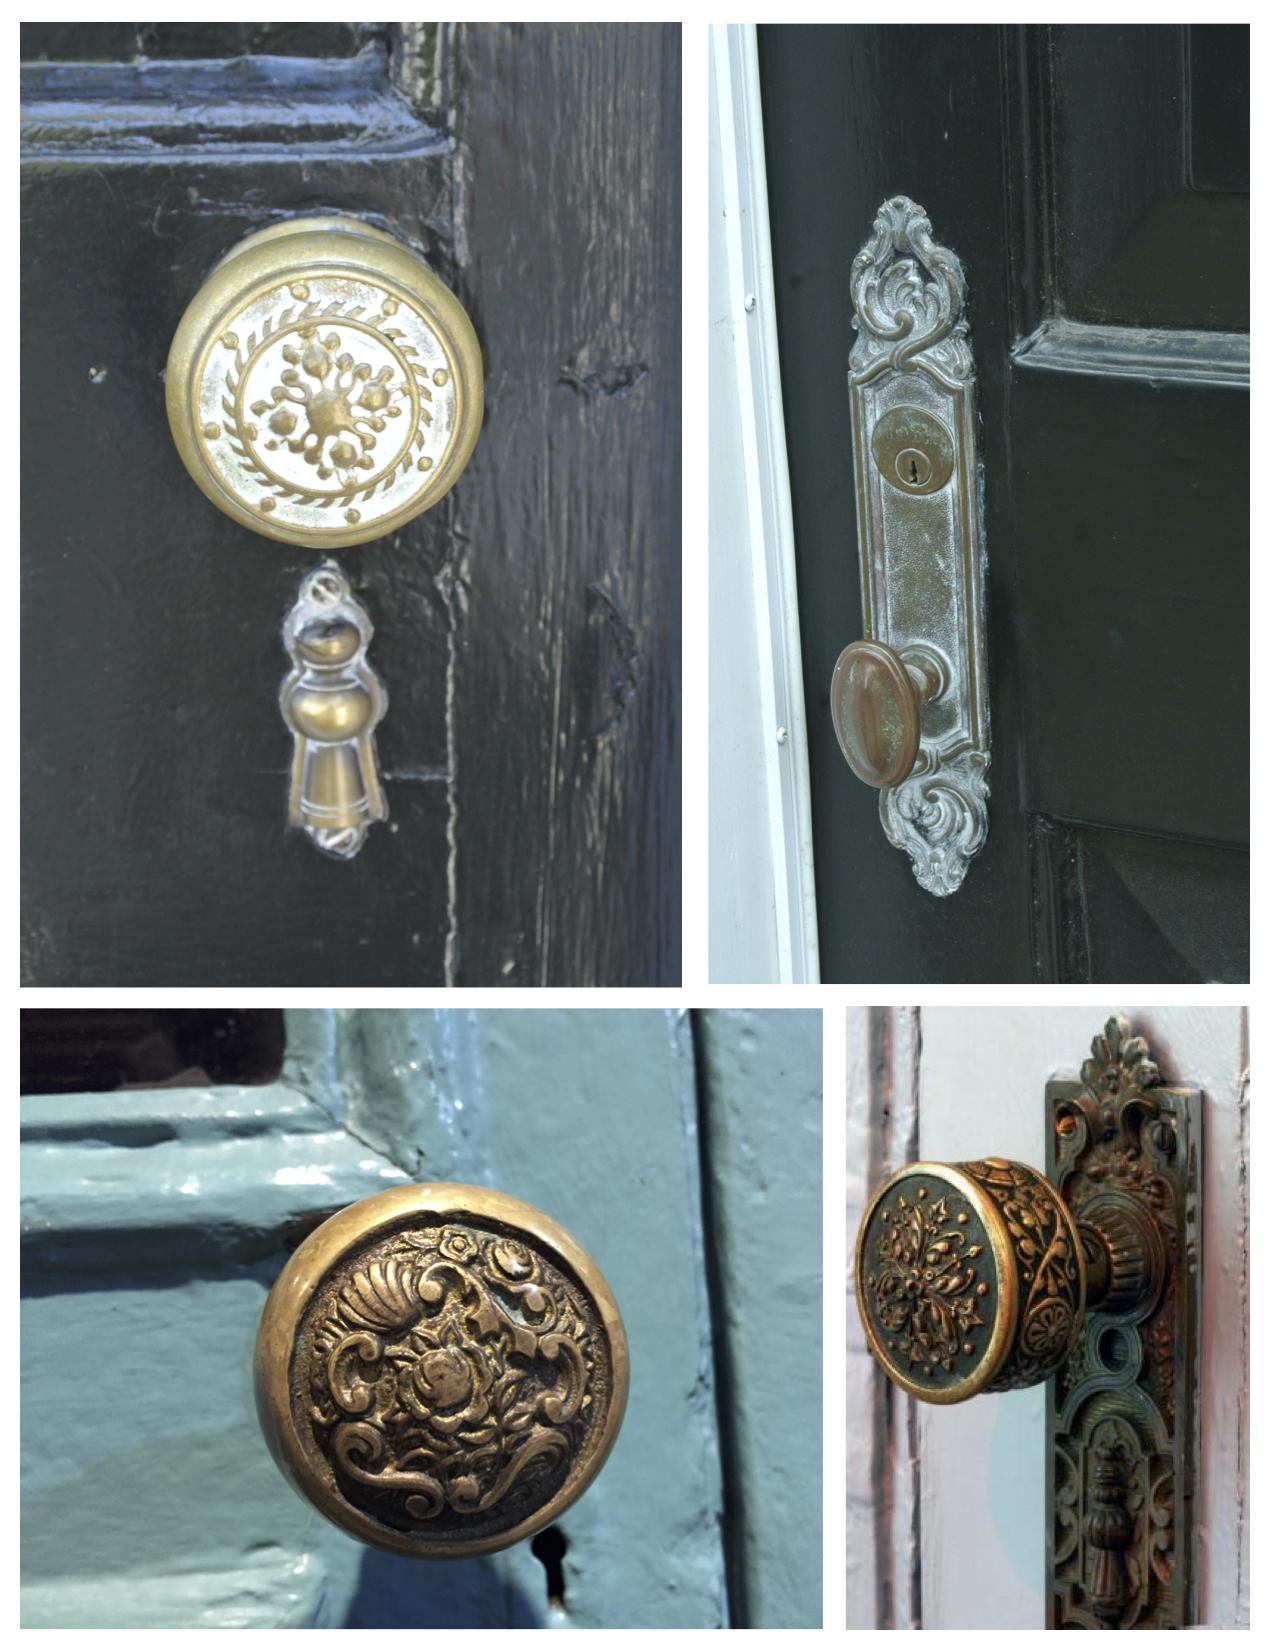 details of past elegance the vintage door knob